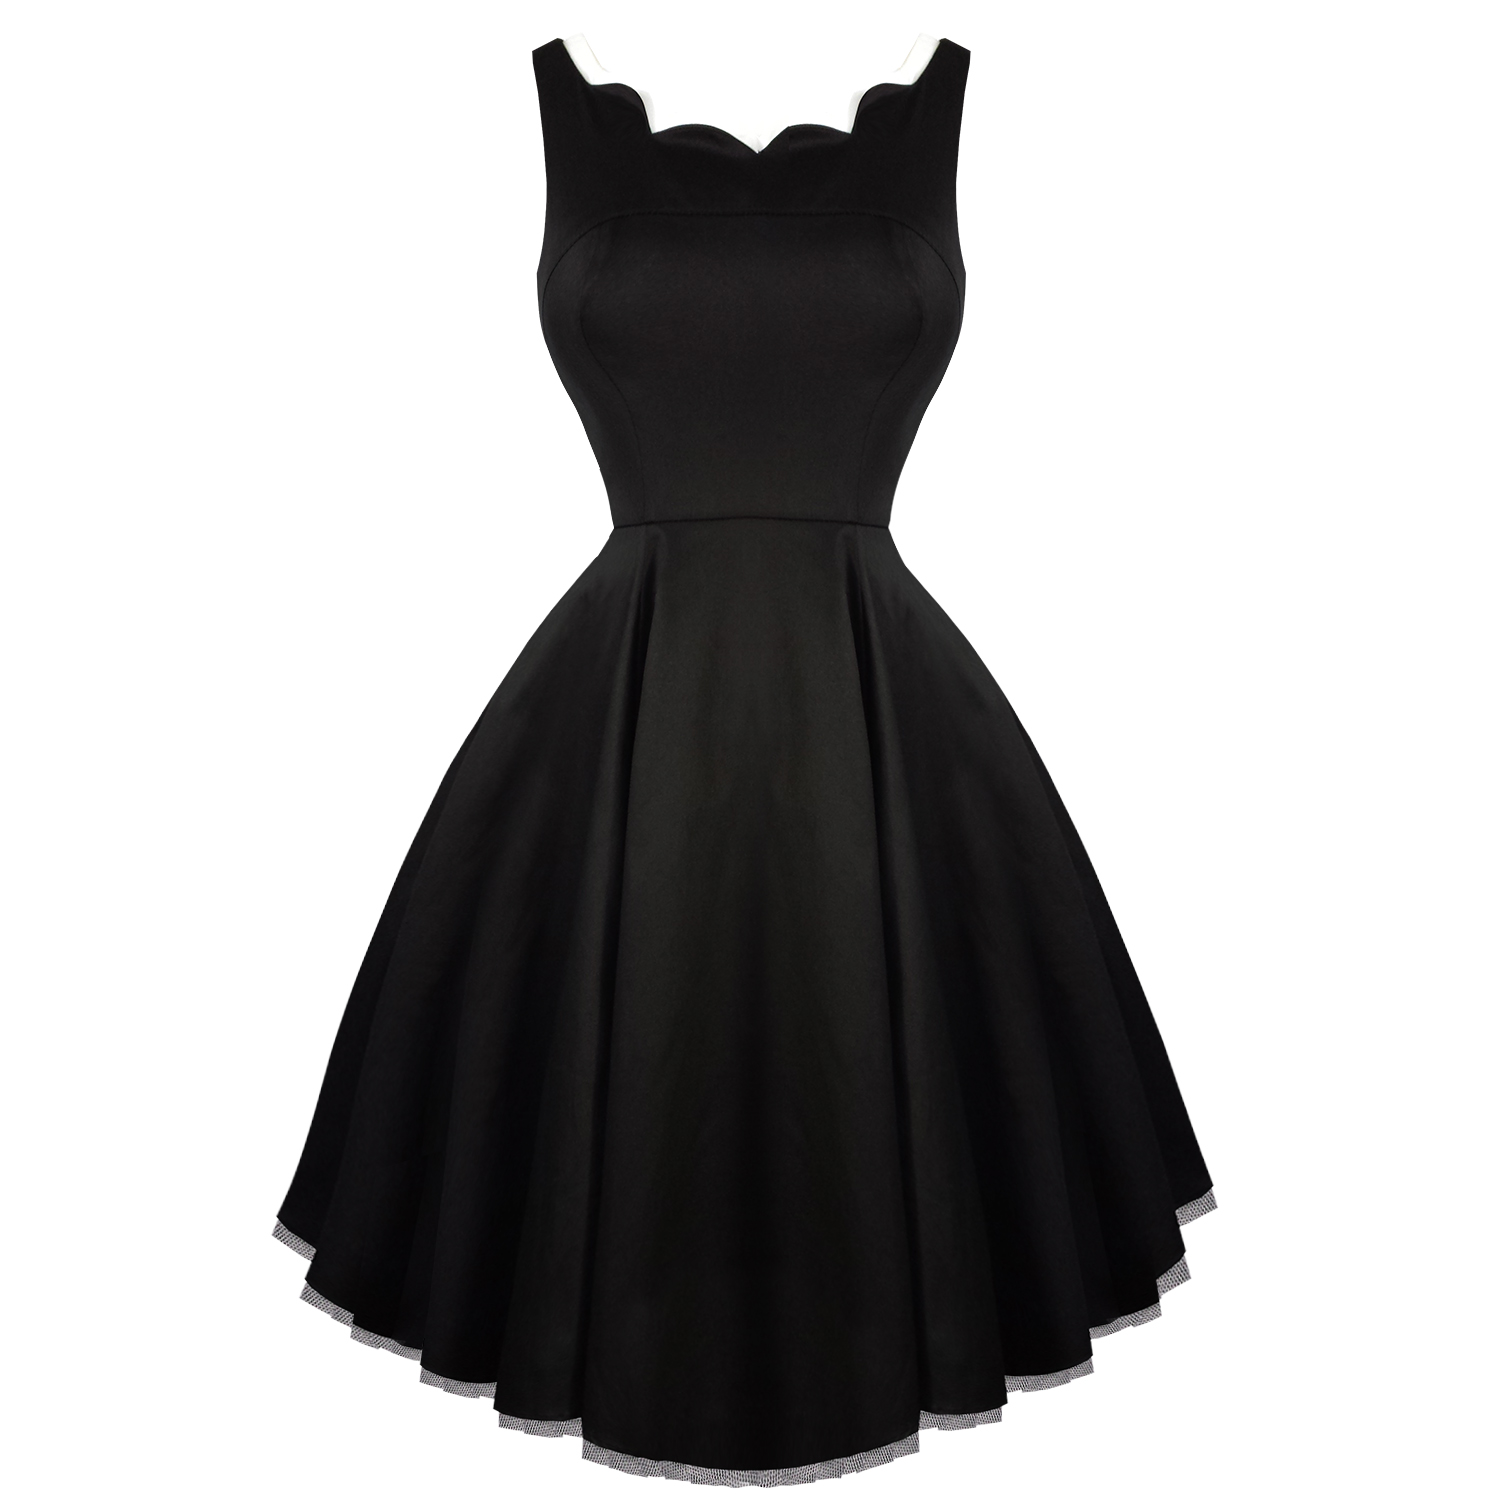 Cheap 50 s style dresses uk